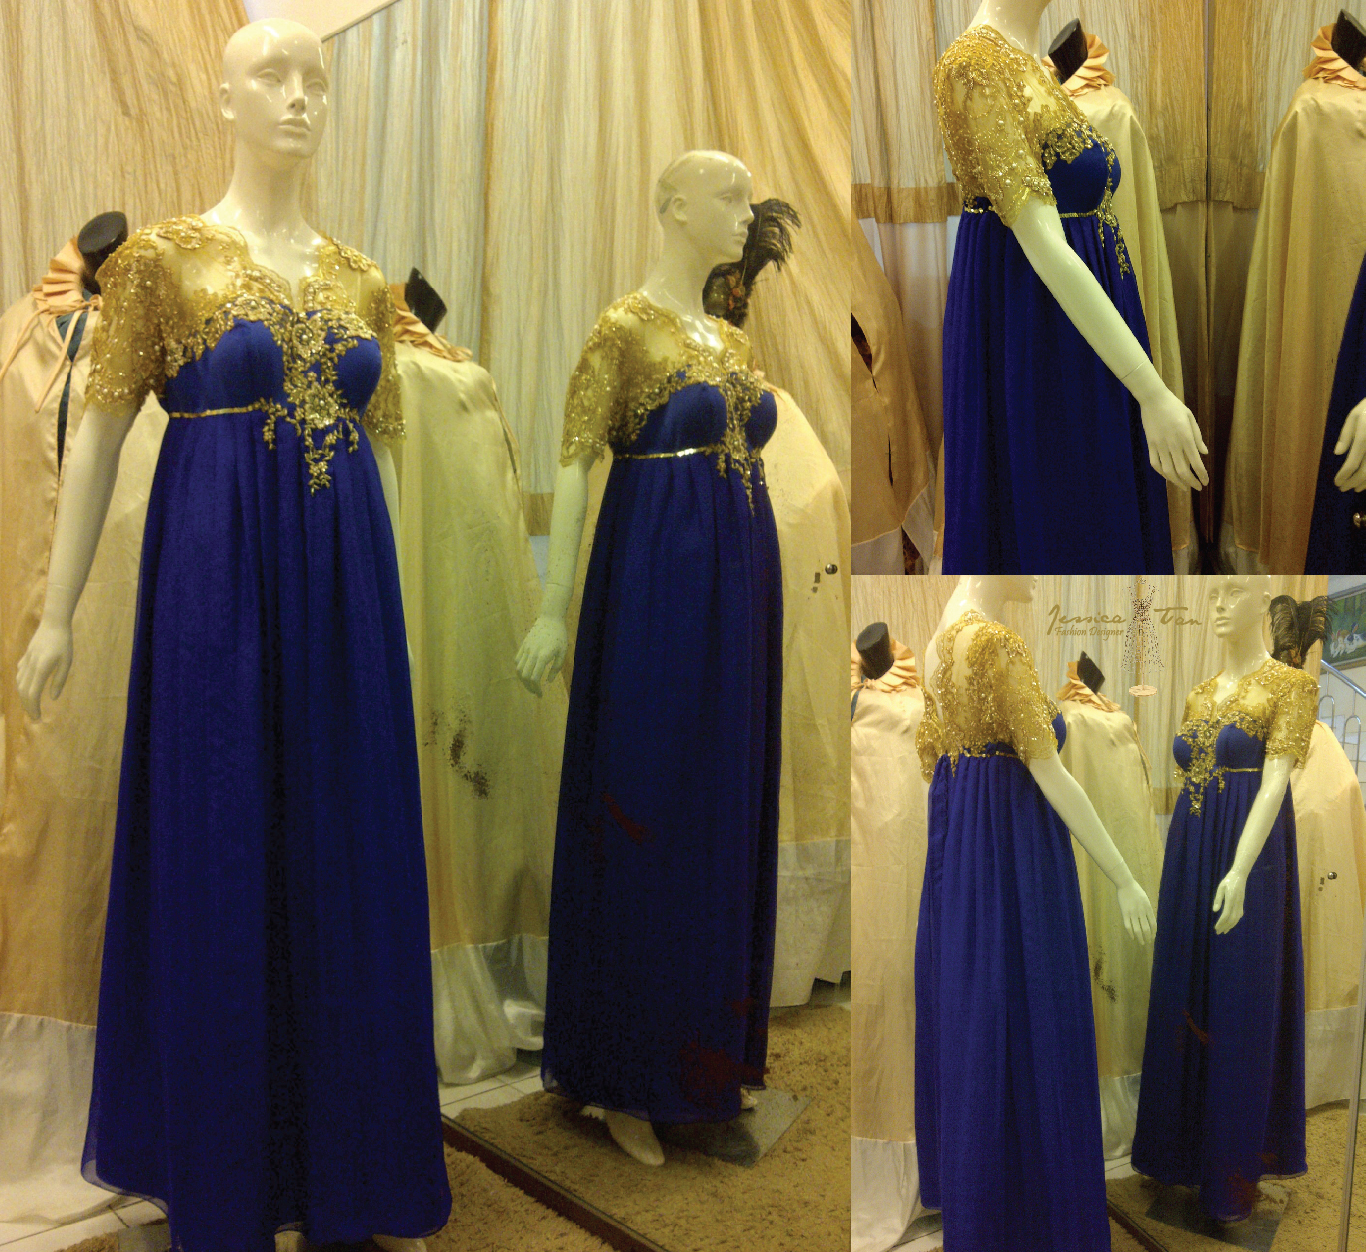 Design baju muslimah male models picture - Jual Wedding Dress Newhairstylesformen2014 Com